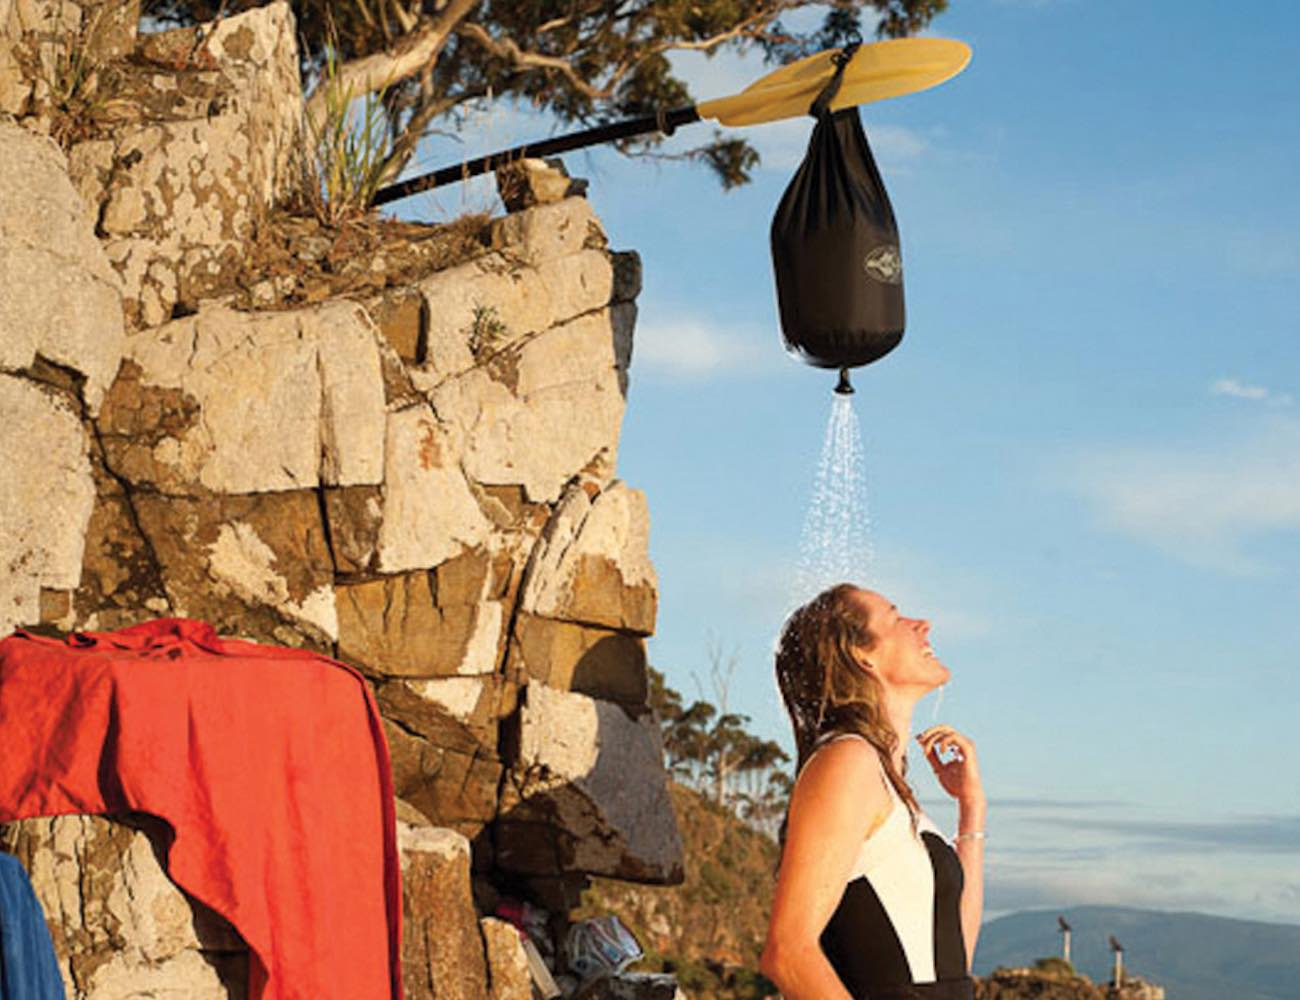 woman using a camping shower